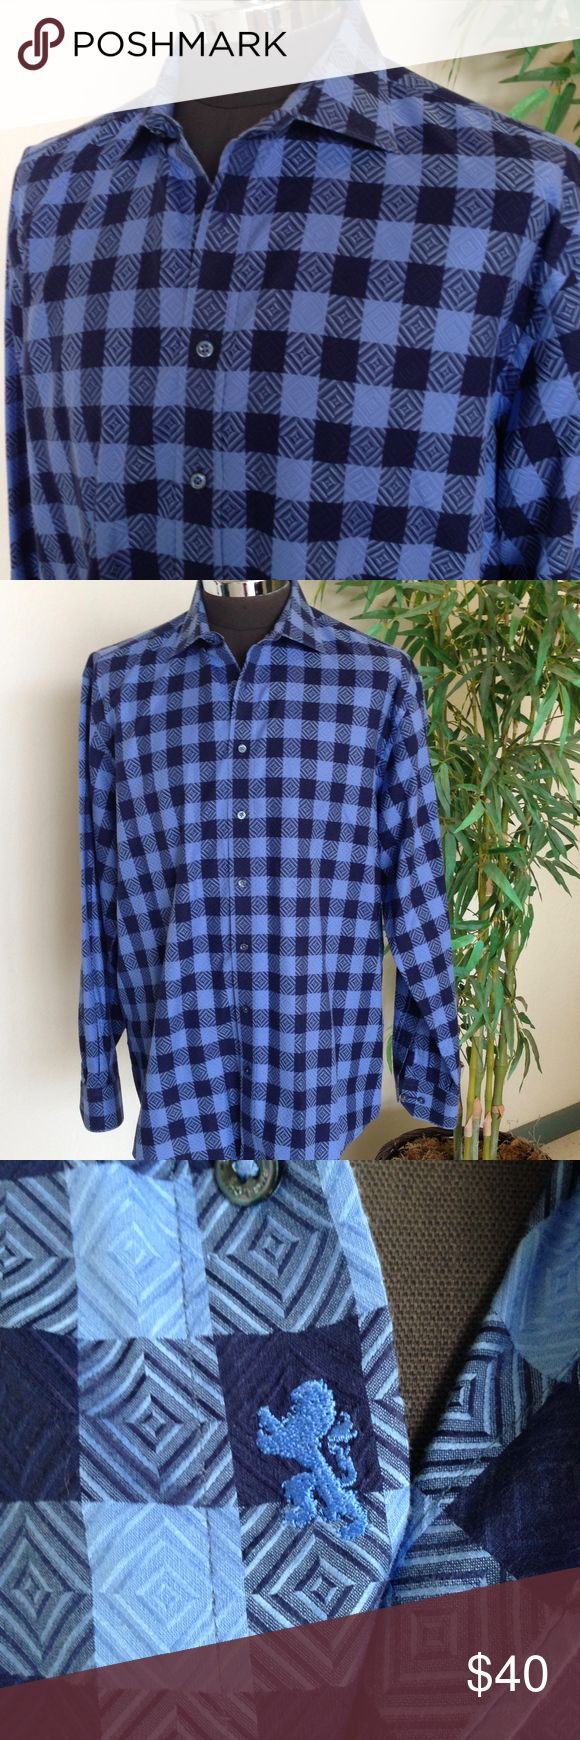 """Bugatchi Uomo Texturized Blue Plaid Shirt Such a great fabric - Exaggerated Gingham Check not quite a buffalo plaid but with texture! Great classic fit mens shirt Maker: Bugatchi Uomo Fabric: 100%  Cotton  Listed Size:  Tag is out but according to size charts 3XL Measurements: Shoulder seam to shoulder seam: 21"""" Armpit to armpit:  28"""" Sleeve length from shoulder seam: 27"""" Length: 34"""" Condition: Very good to excellent pre-owned worn used but not abused condition and coming from a non smoking…"""